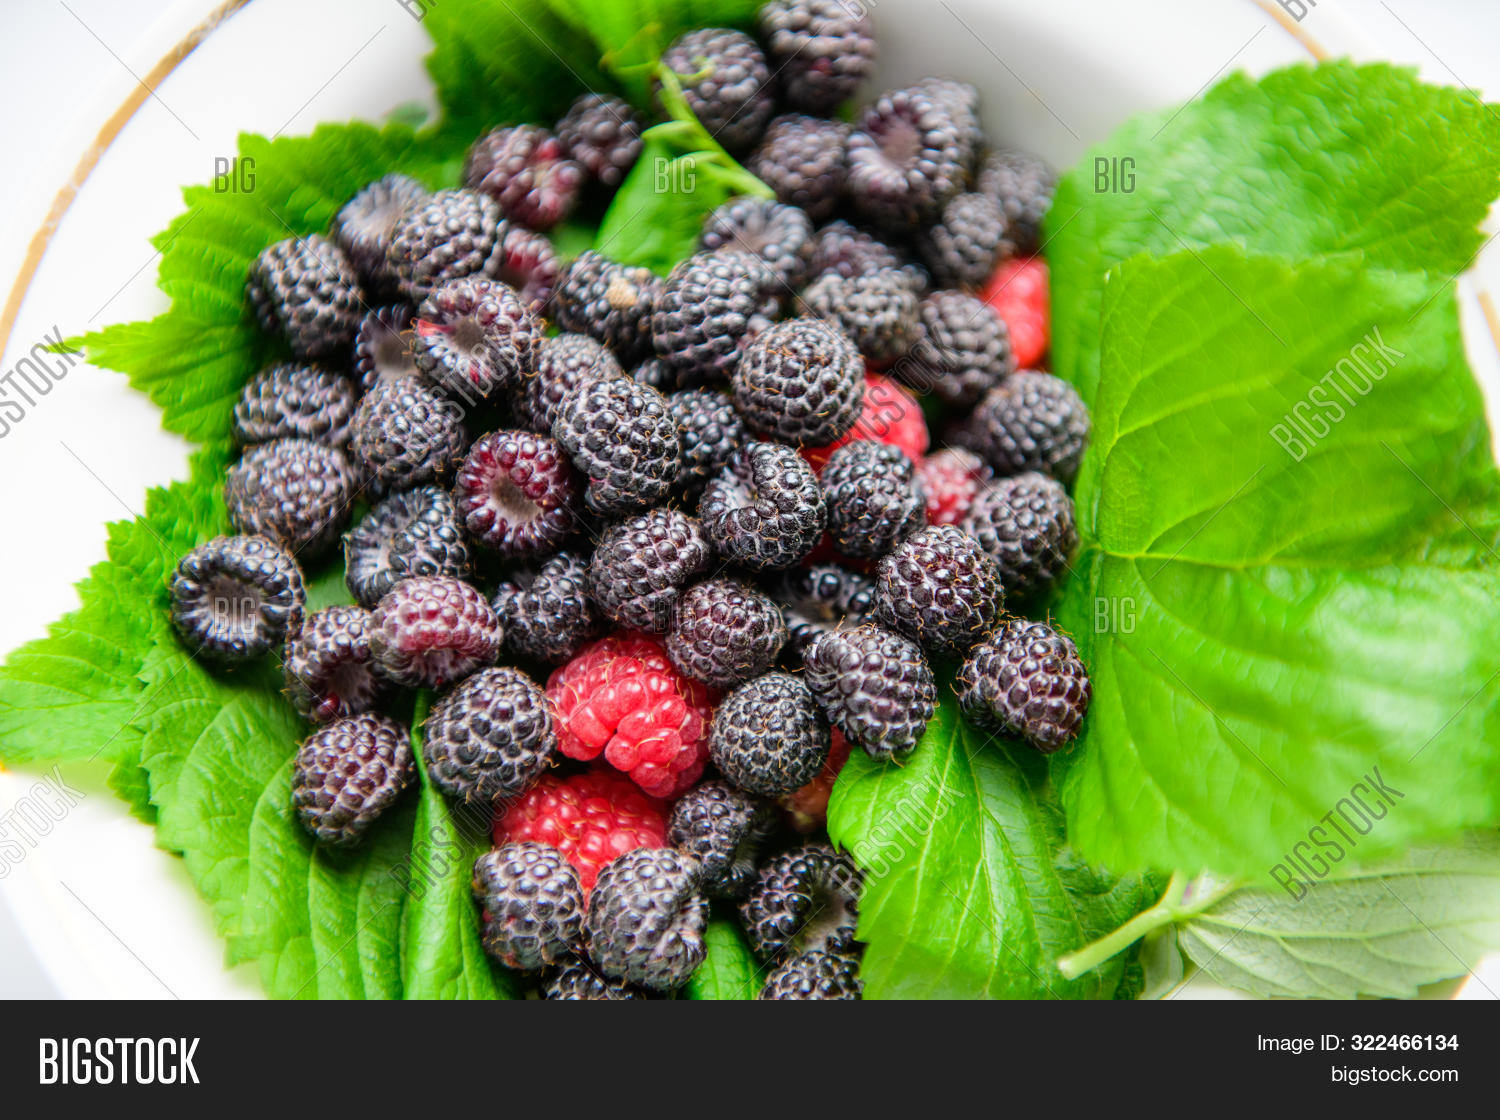 Berries On Green Leaves. Black Raspberries With Red. Berries. Vitamins From Berries.